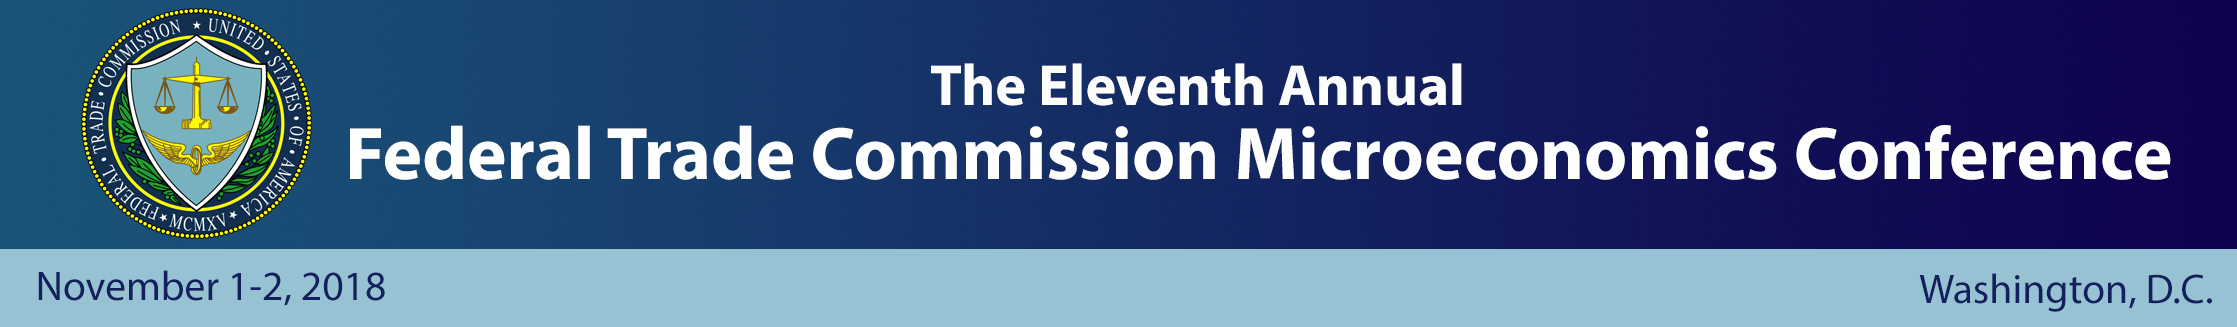 Eleventh Annual Federal Trade Commission Microeconomics Conference